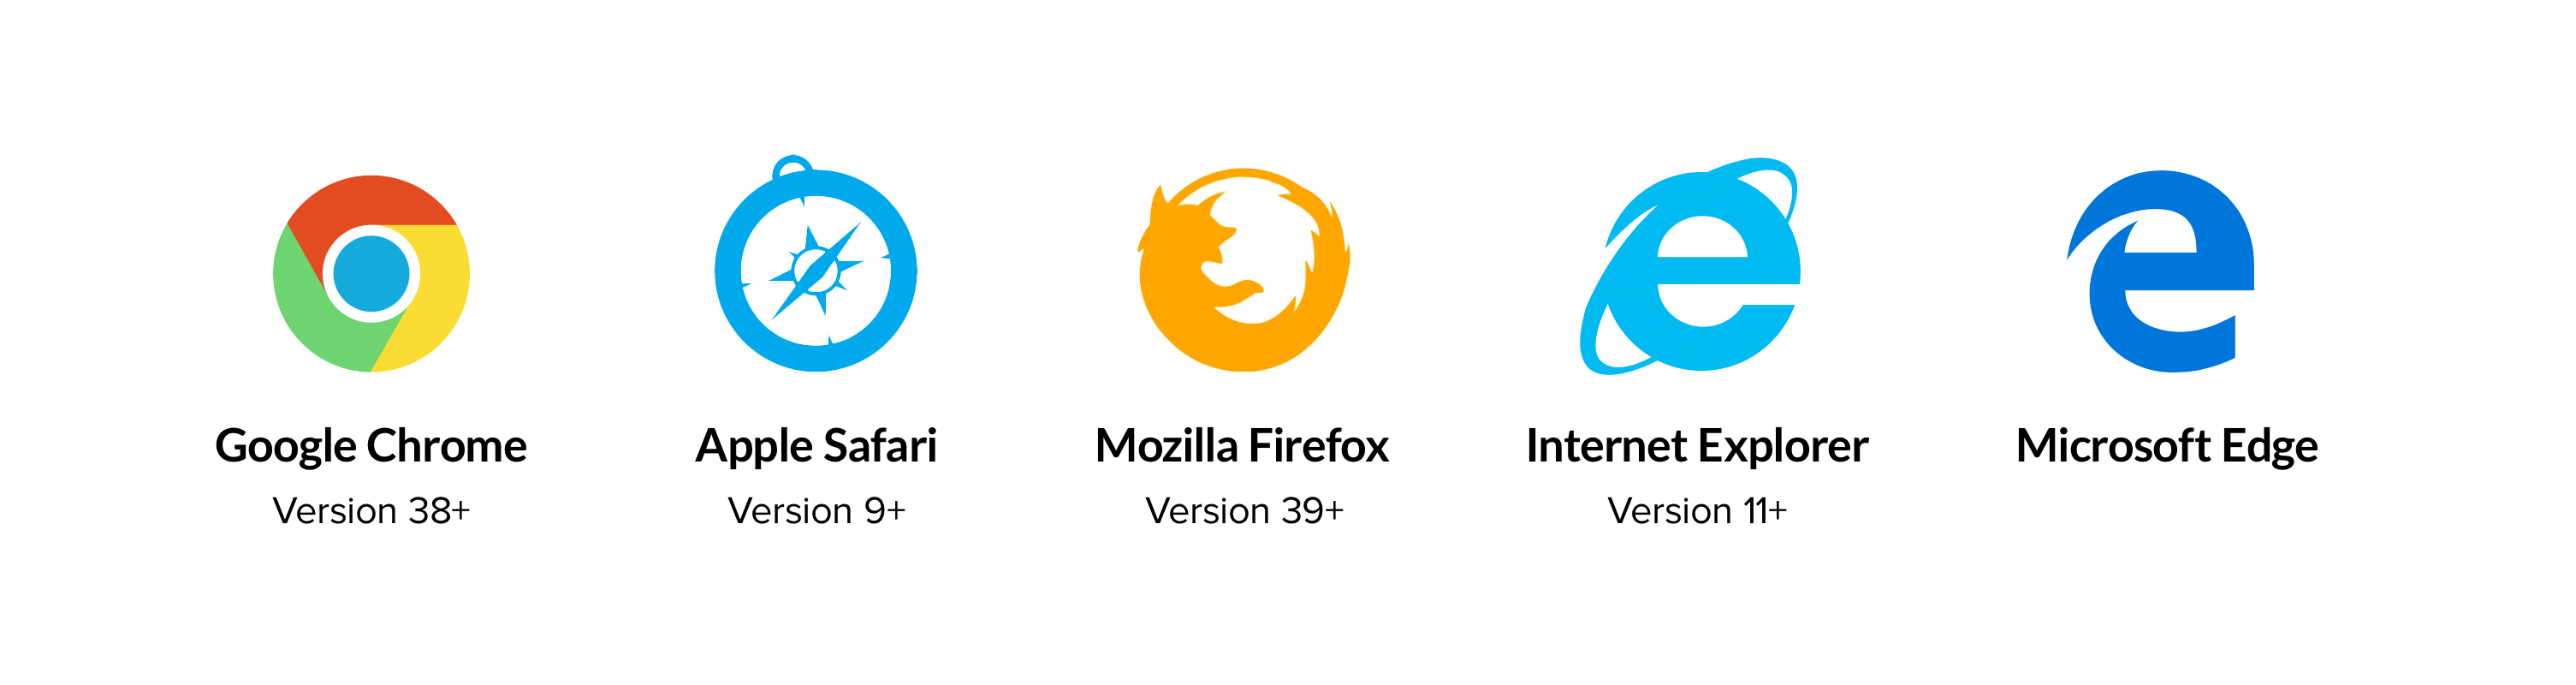 _icons-for-browsers.png